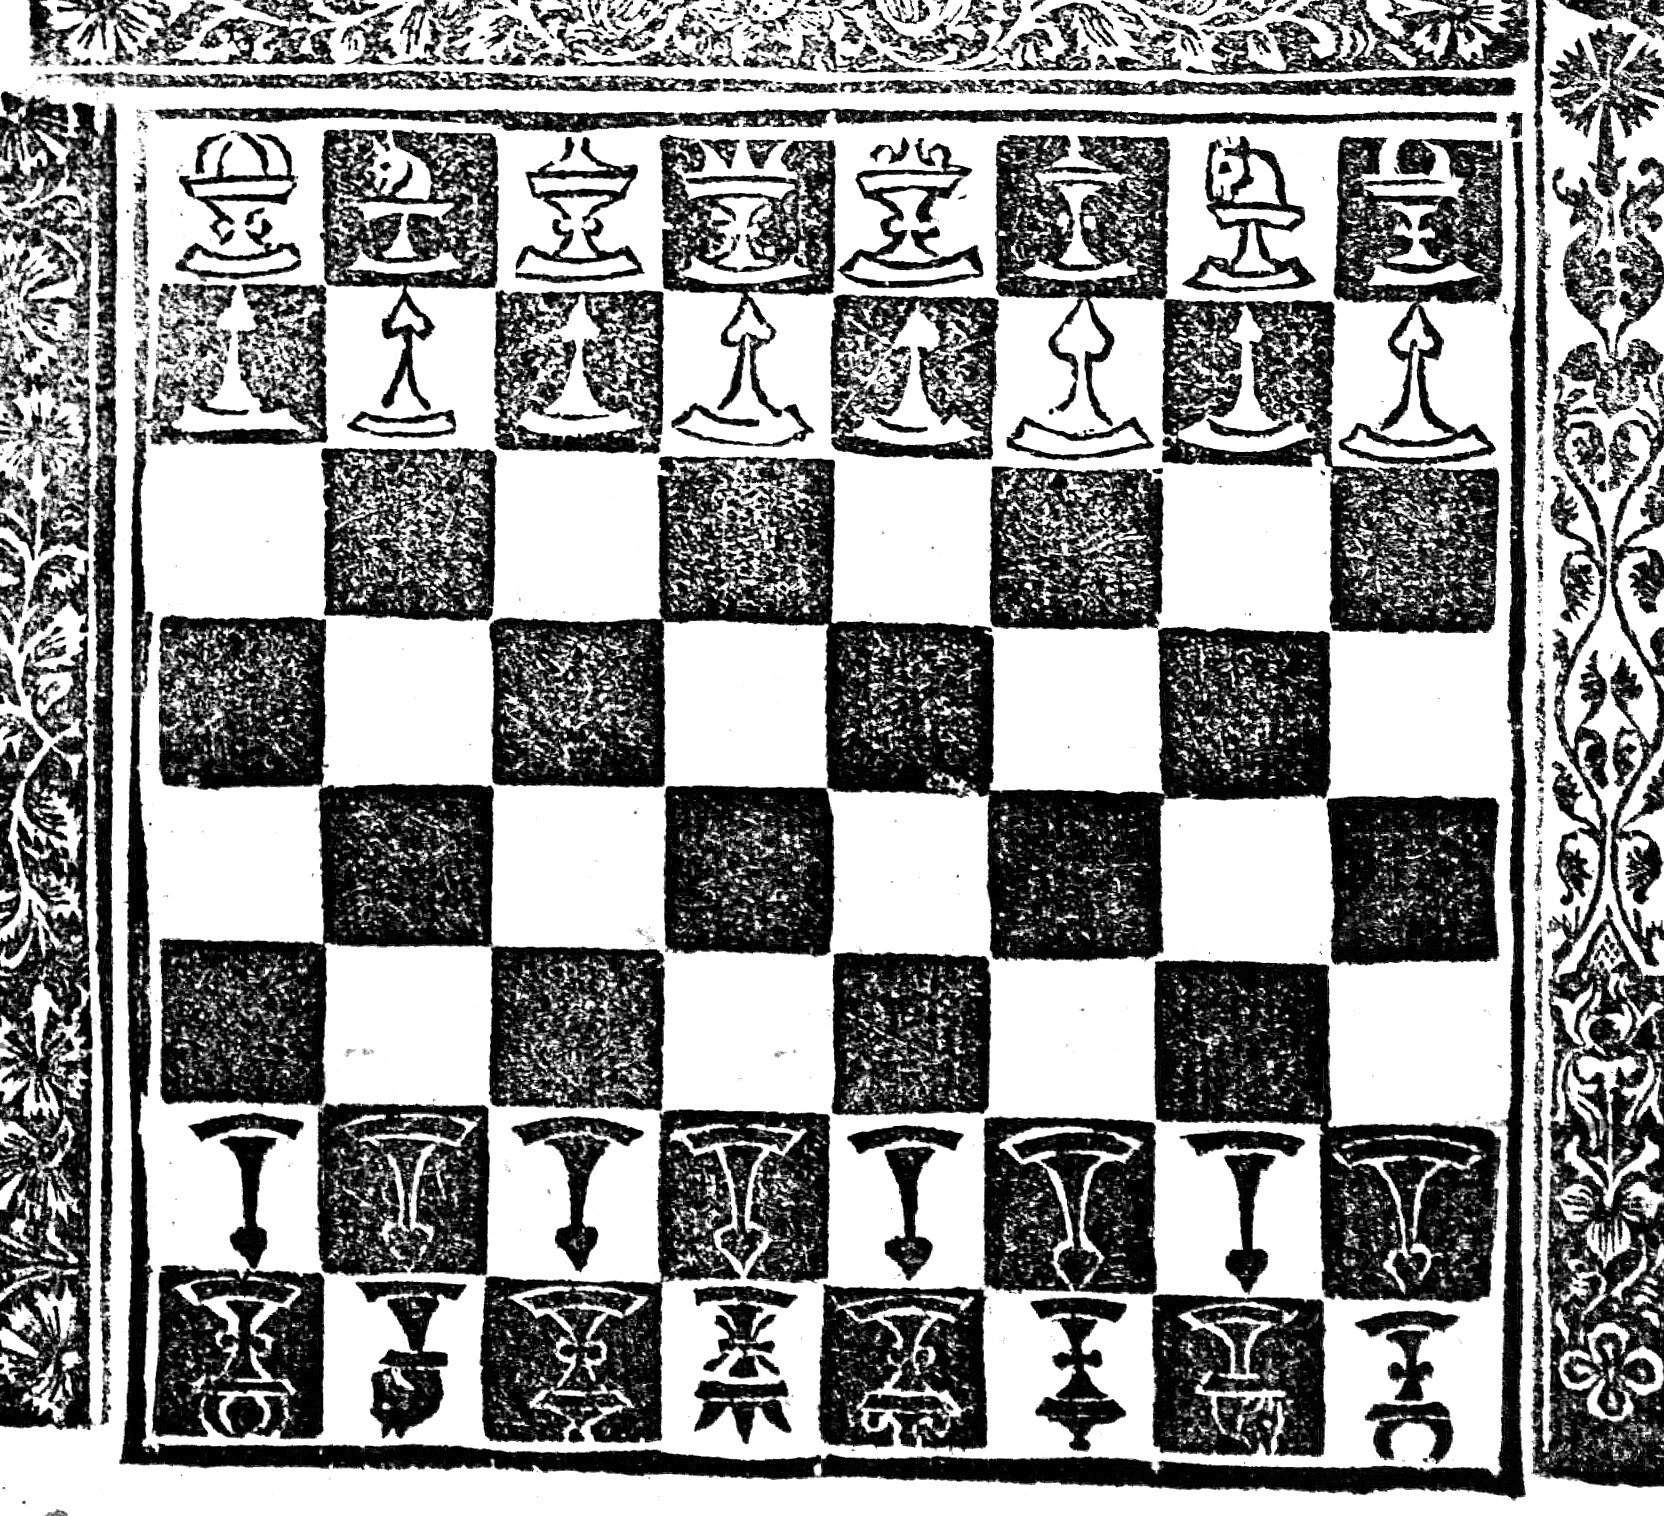 Lucena chess board, detail